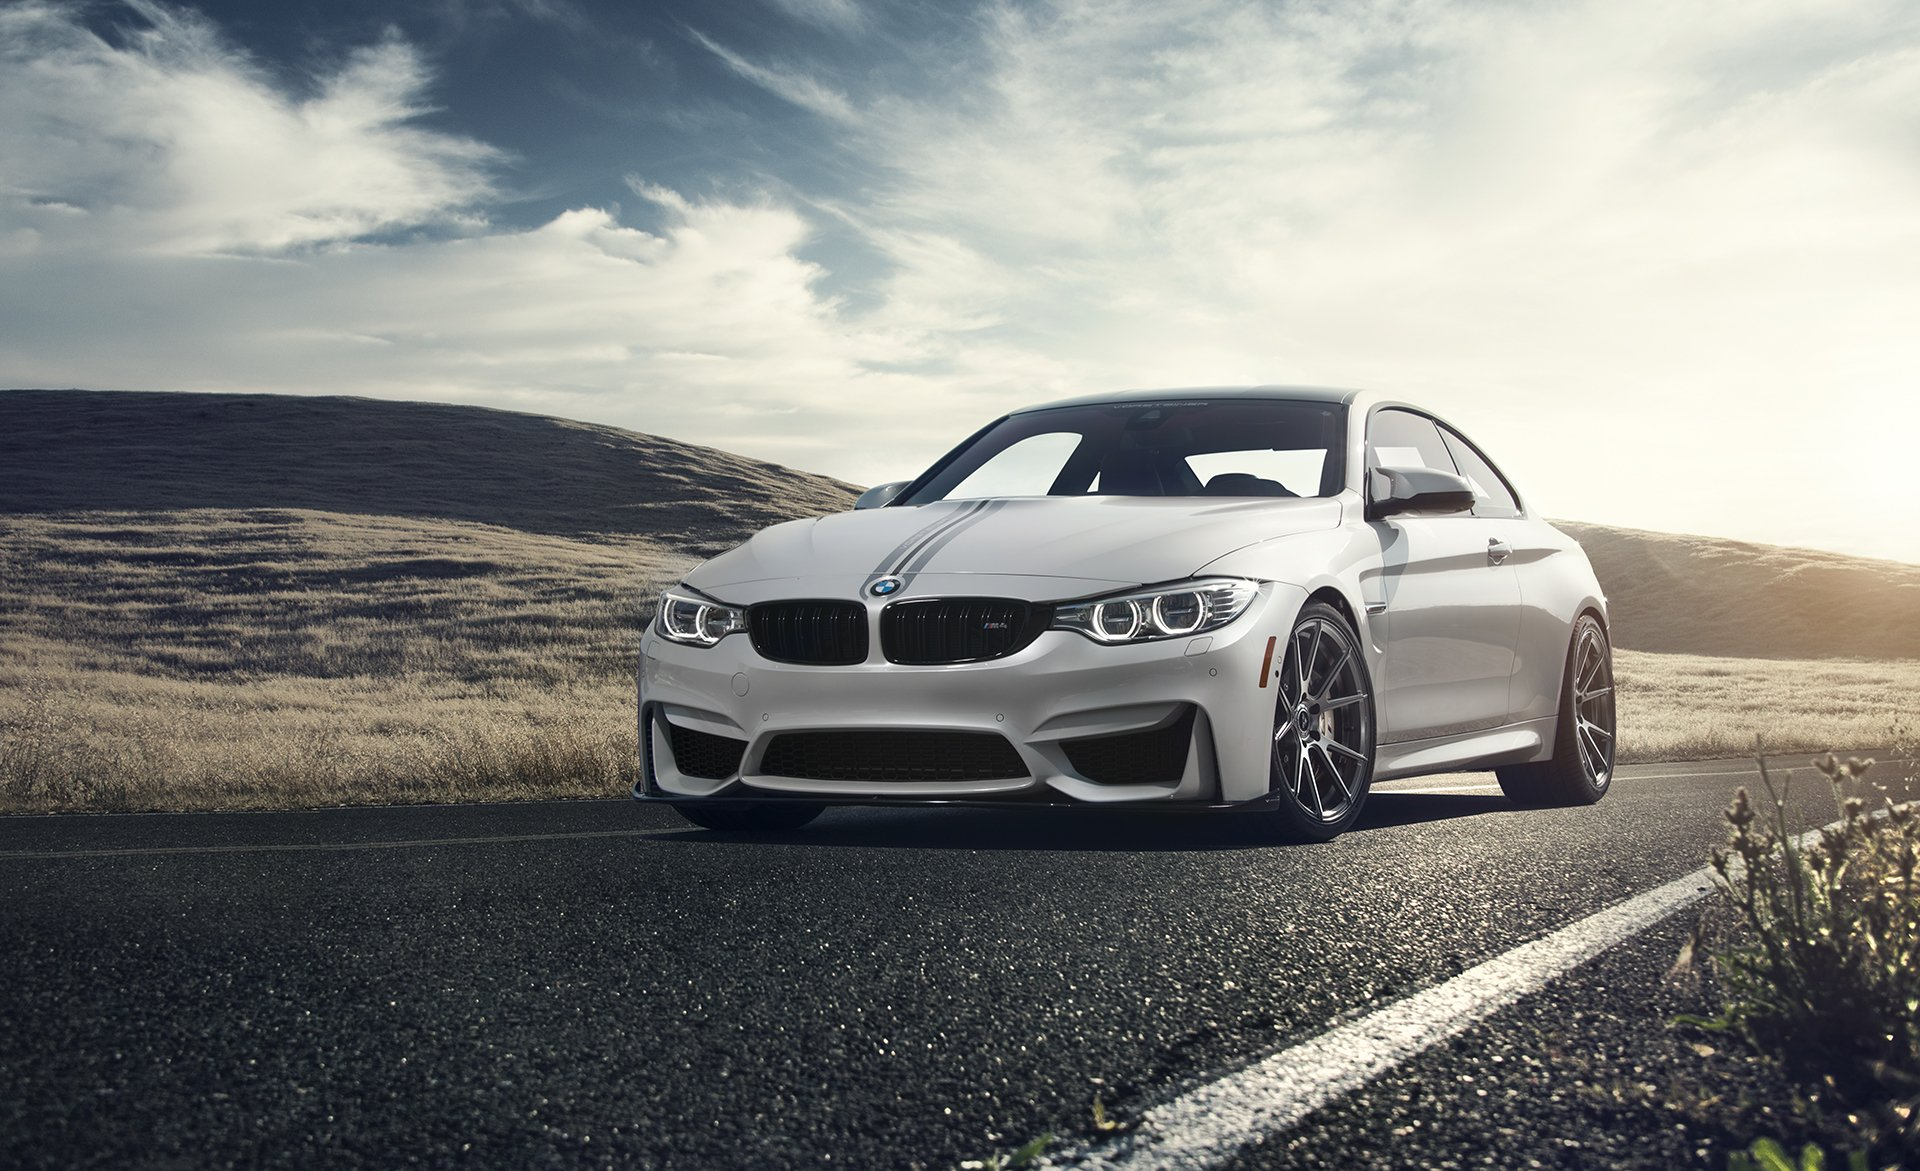 1920x1171 - BMW M4 Wallpapers 15